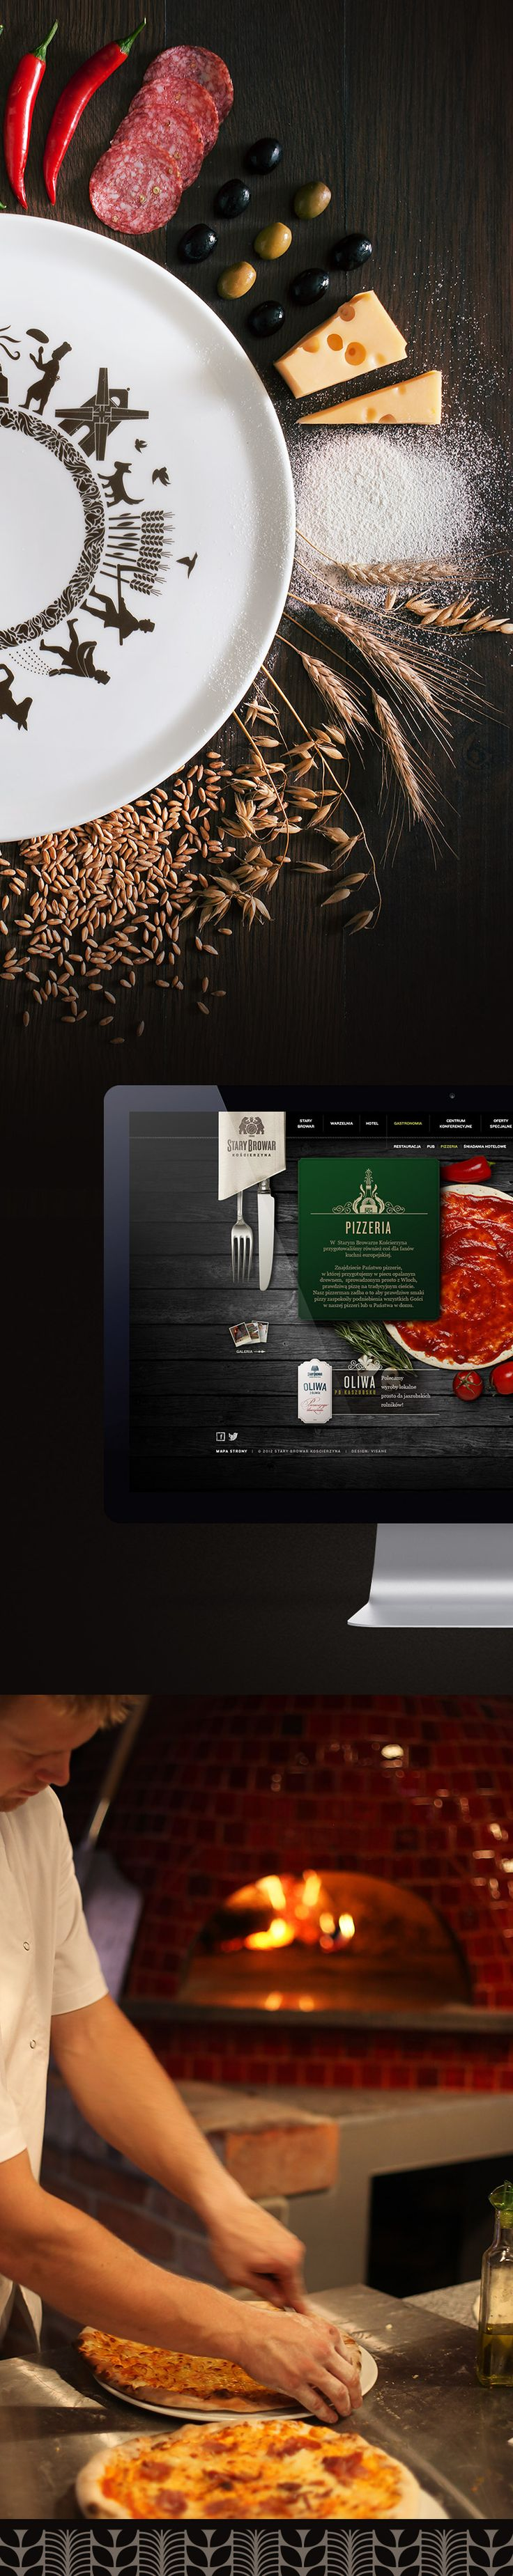 Logo, brand identity, package design, website for Pizzeria in Old Brewery